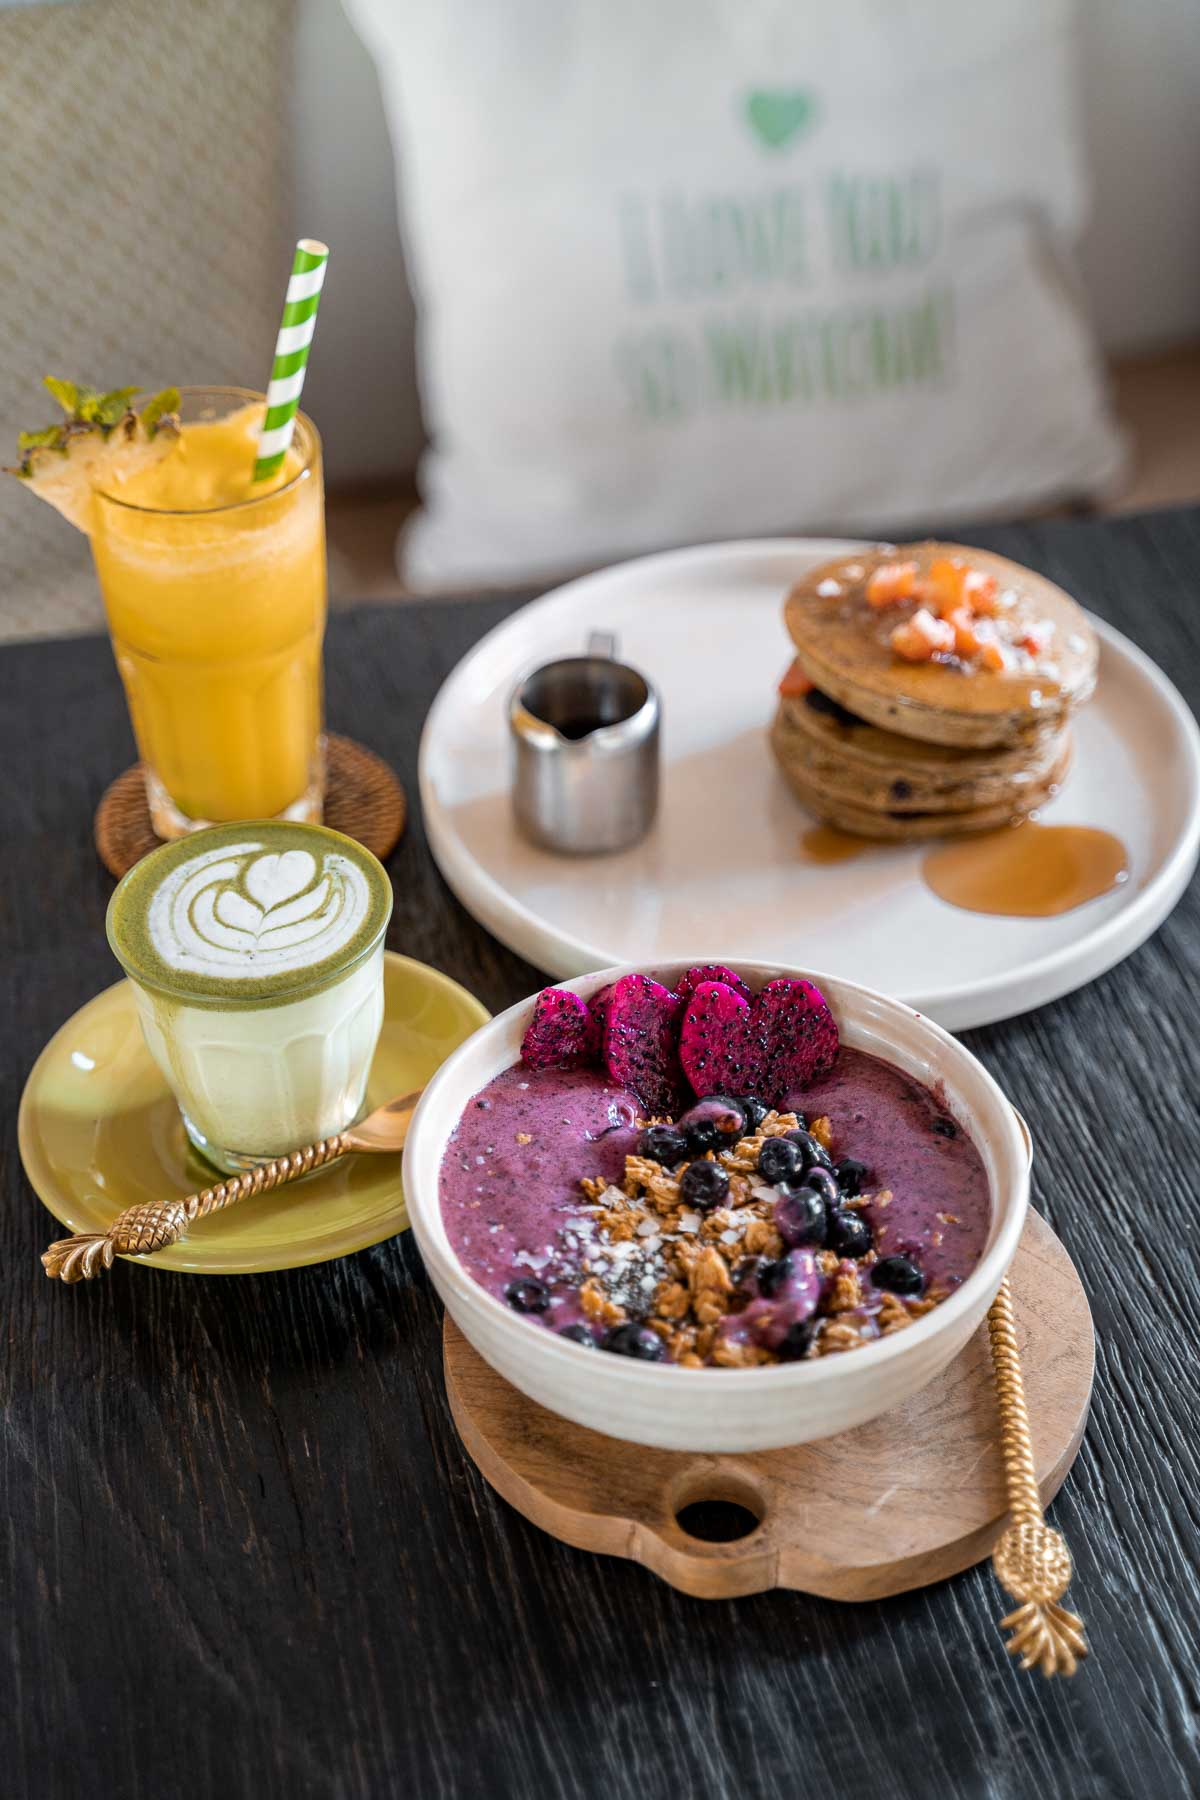 Breakfast with smoothie bowl and pancakes at Matcha Cafe in Canggu, Bali